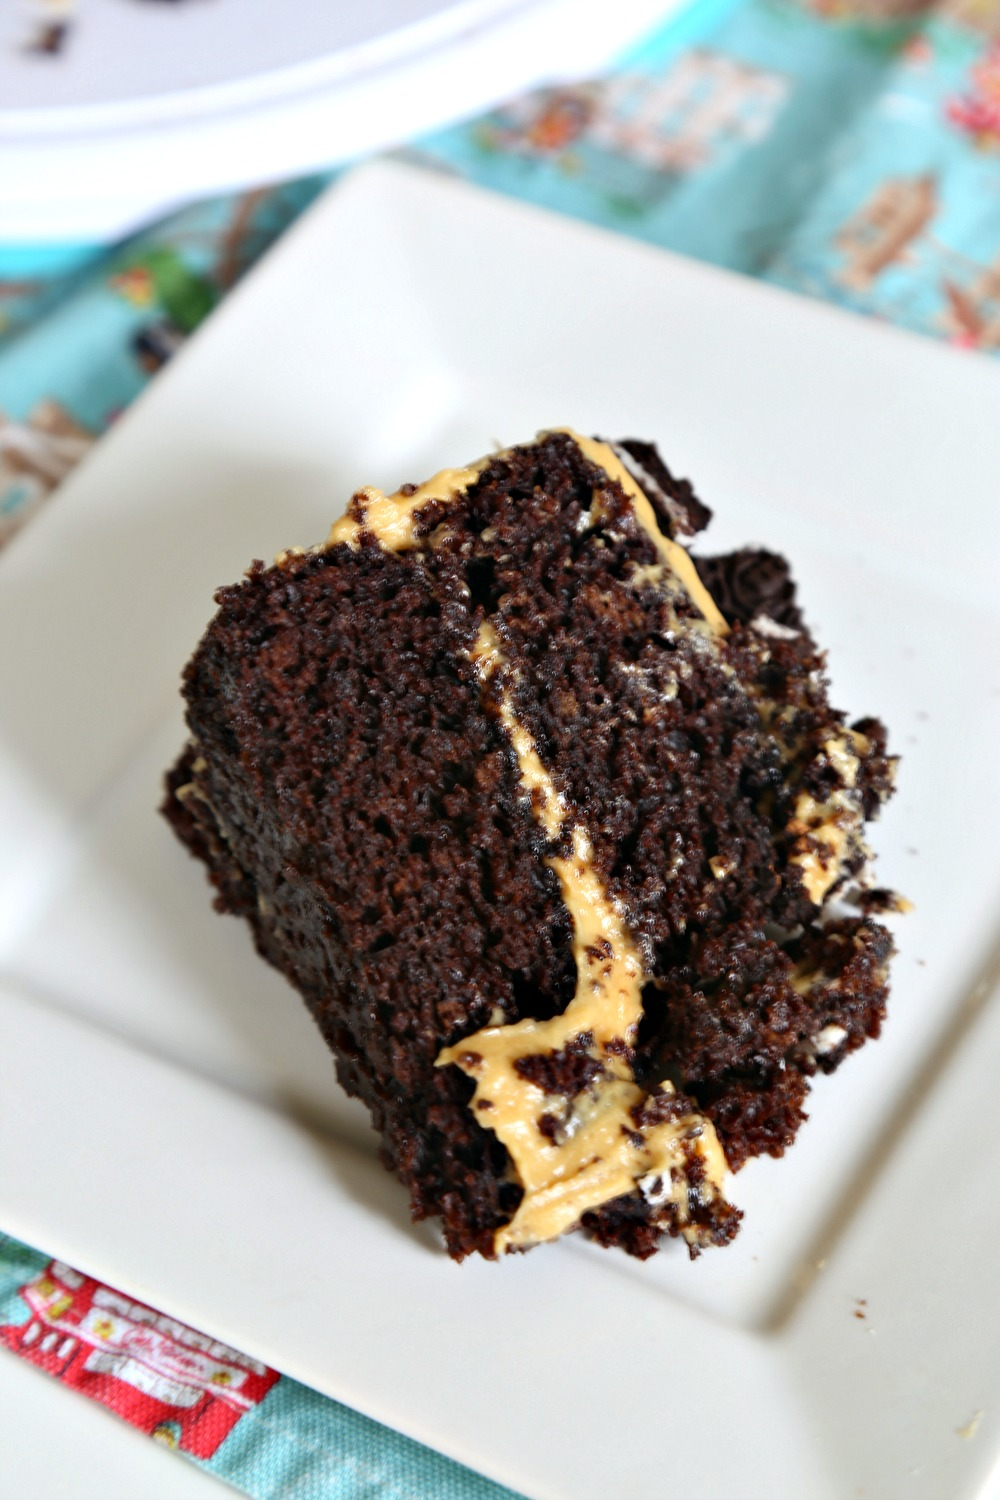 Chocolate Layer Cake with Peanut Butter Frosting 1--071117